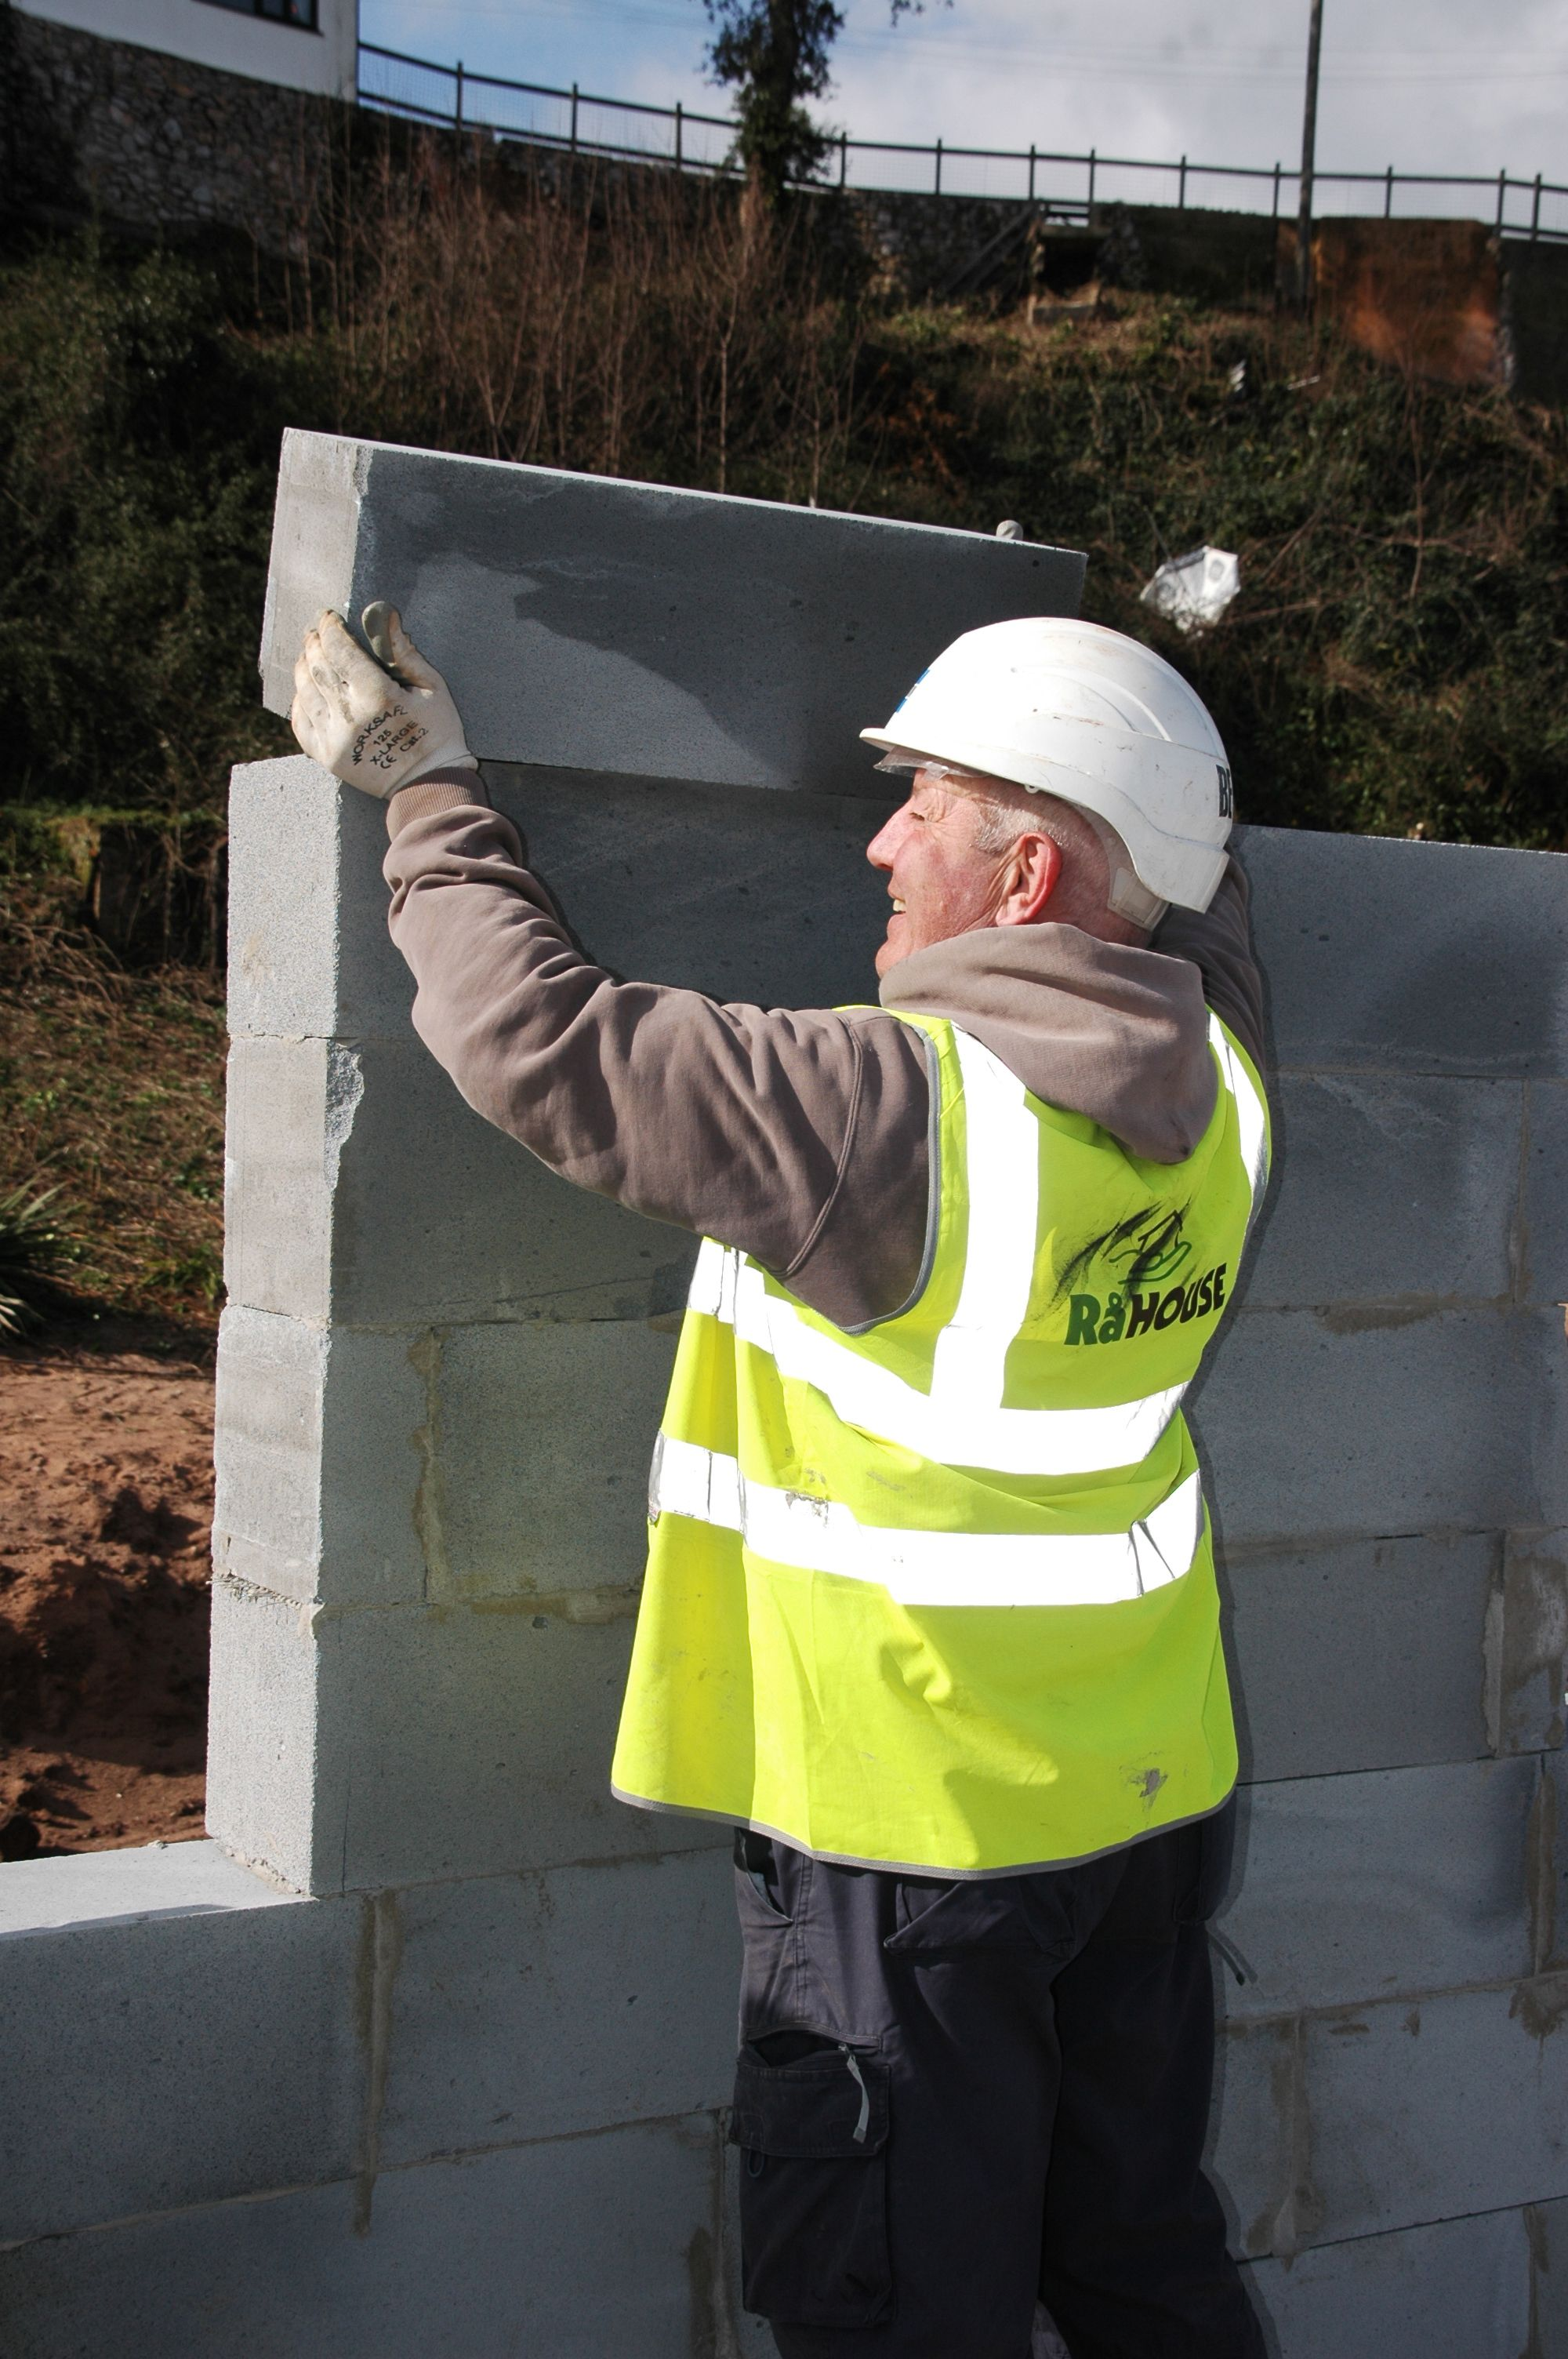 Aircrete Manufacturer Wages War on Paper with Help from